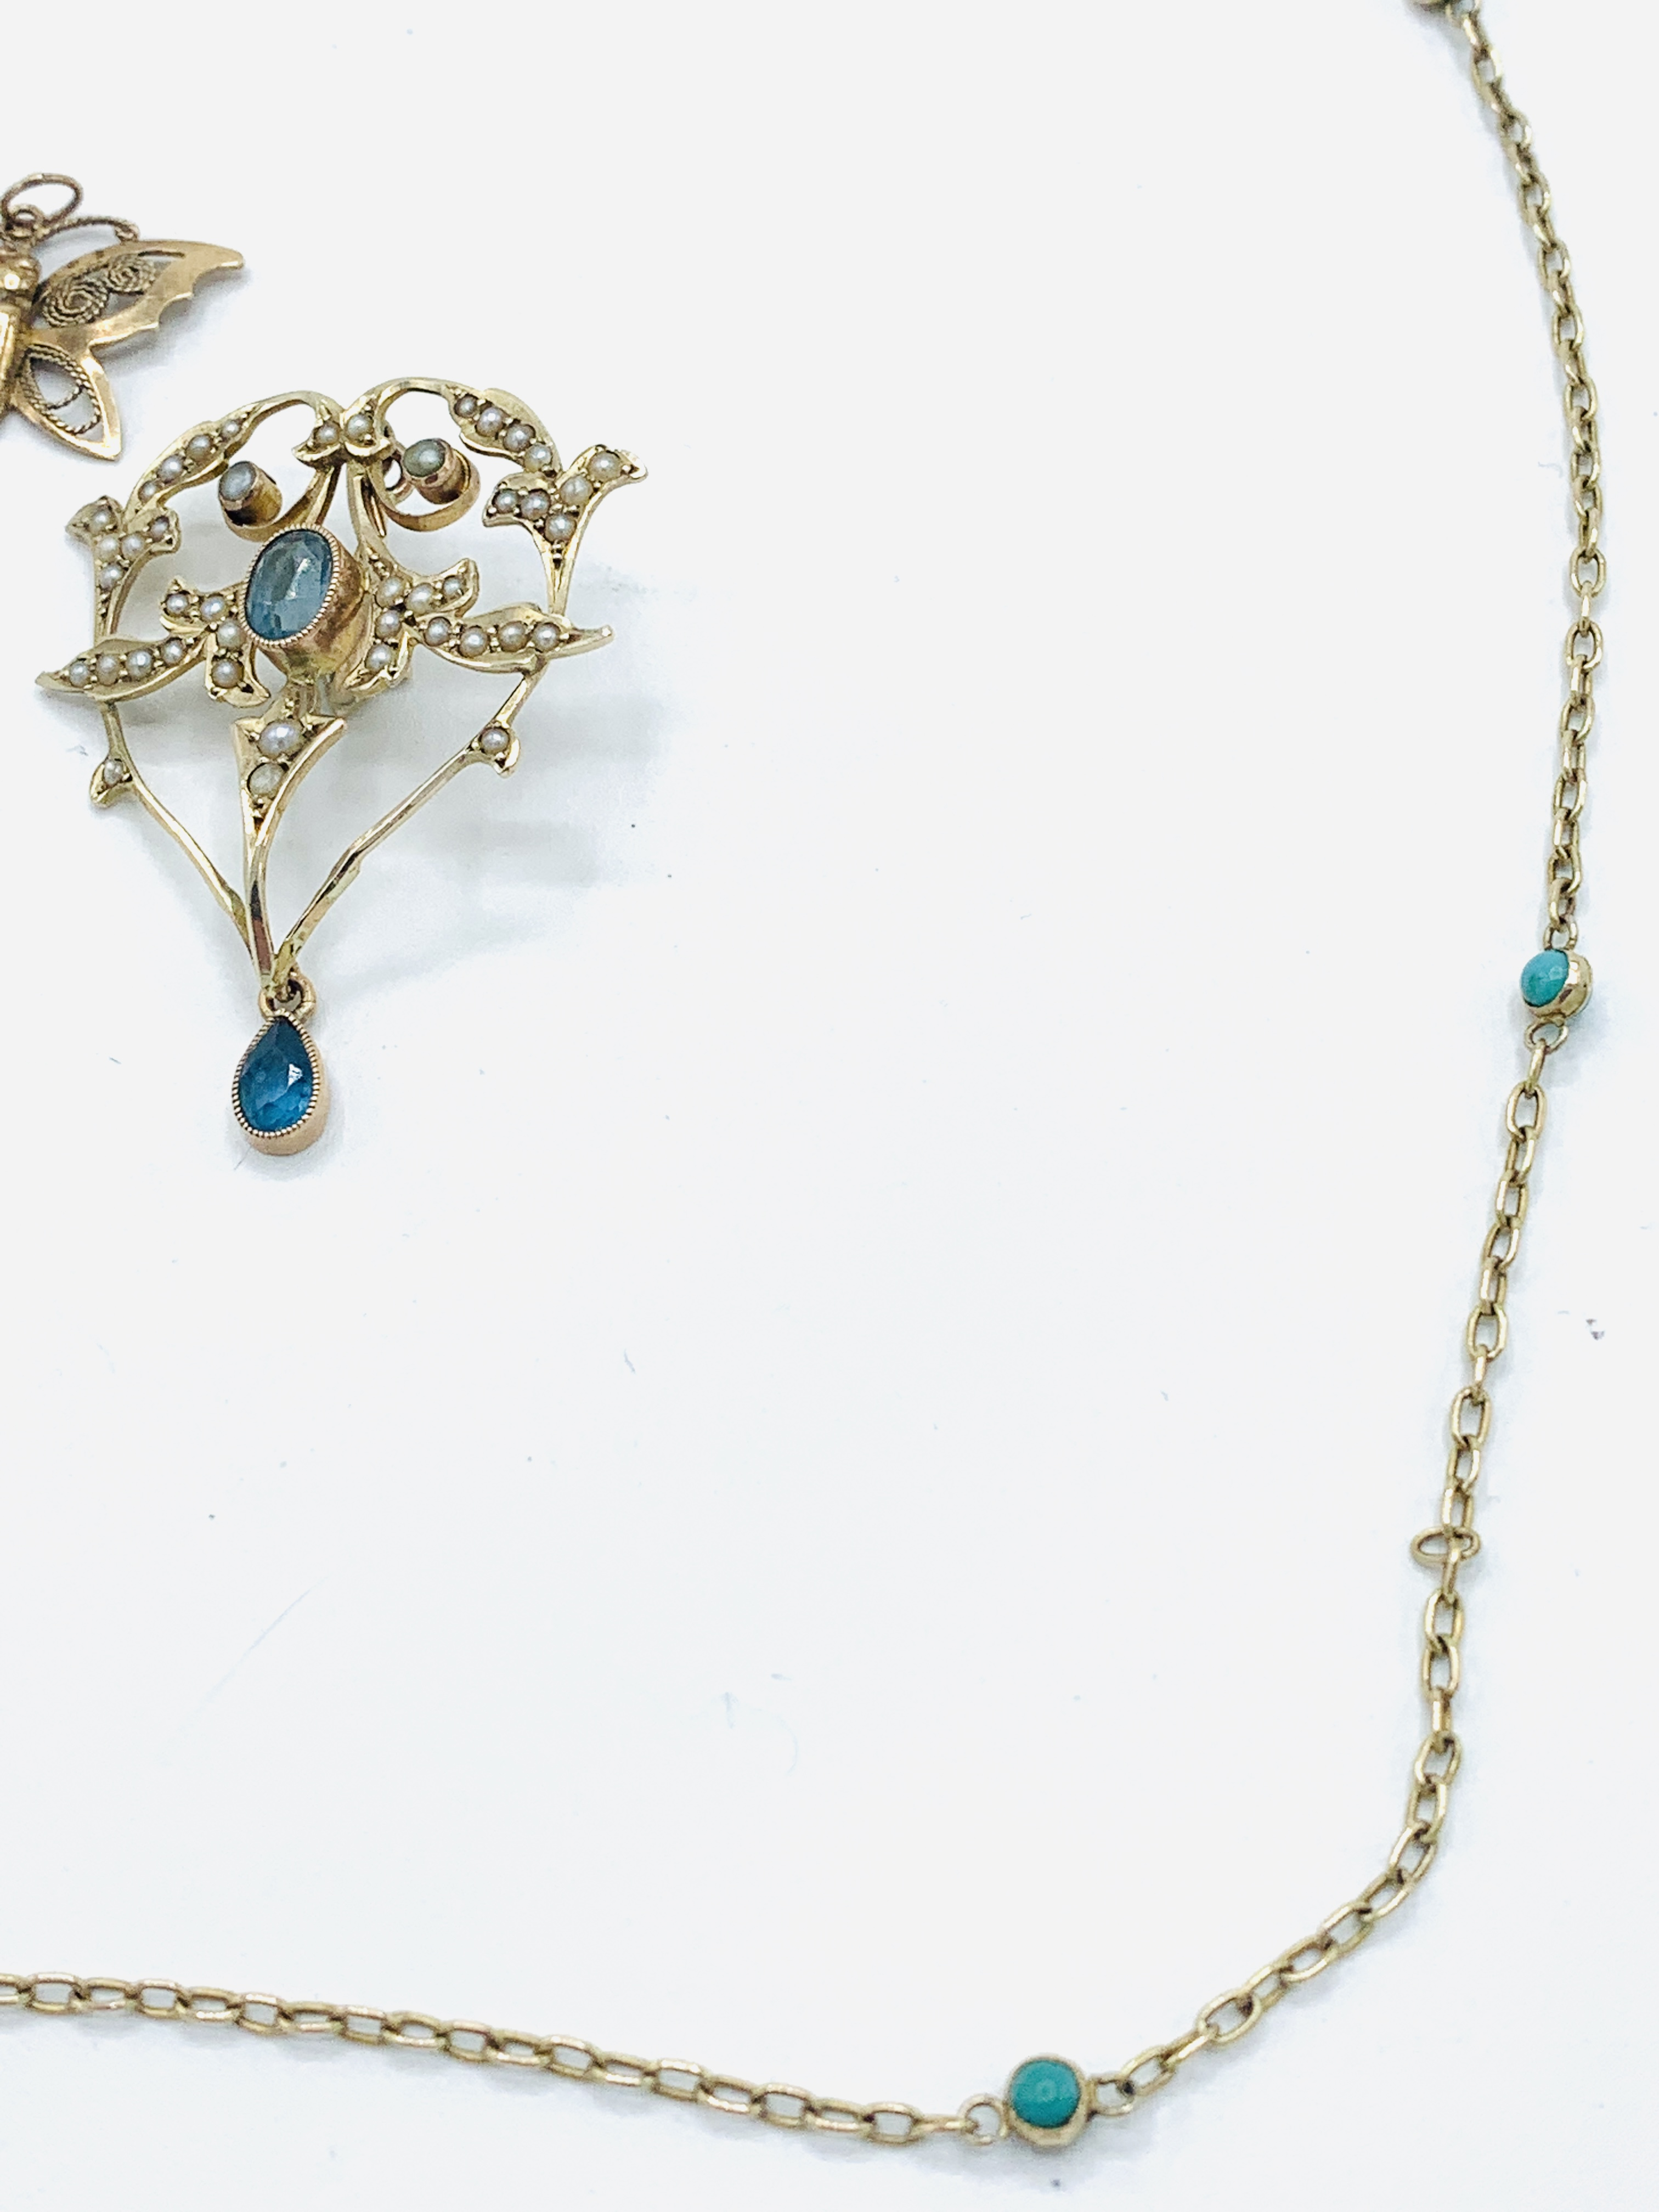 9ct gold aquamarine and seed pearl pendant; gold and turquoise chain; gold cross; butterfly brooch - Image 4 of 5